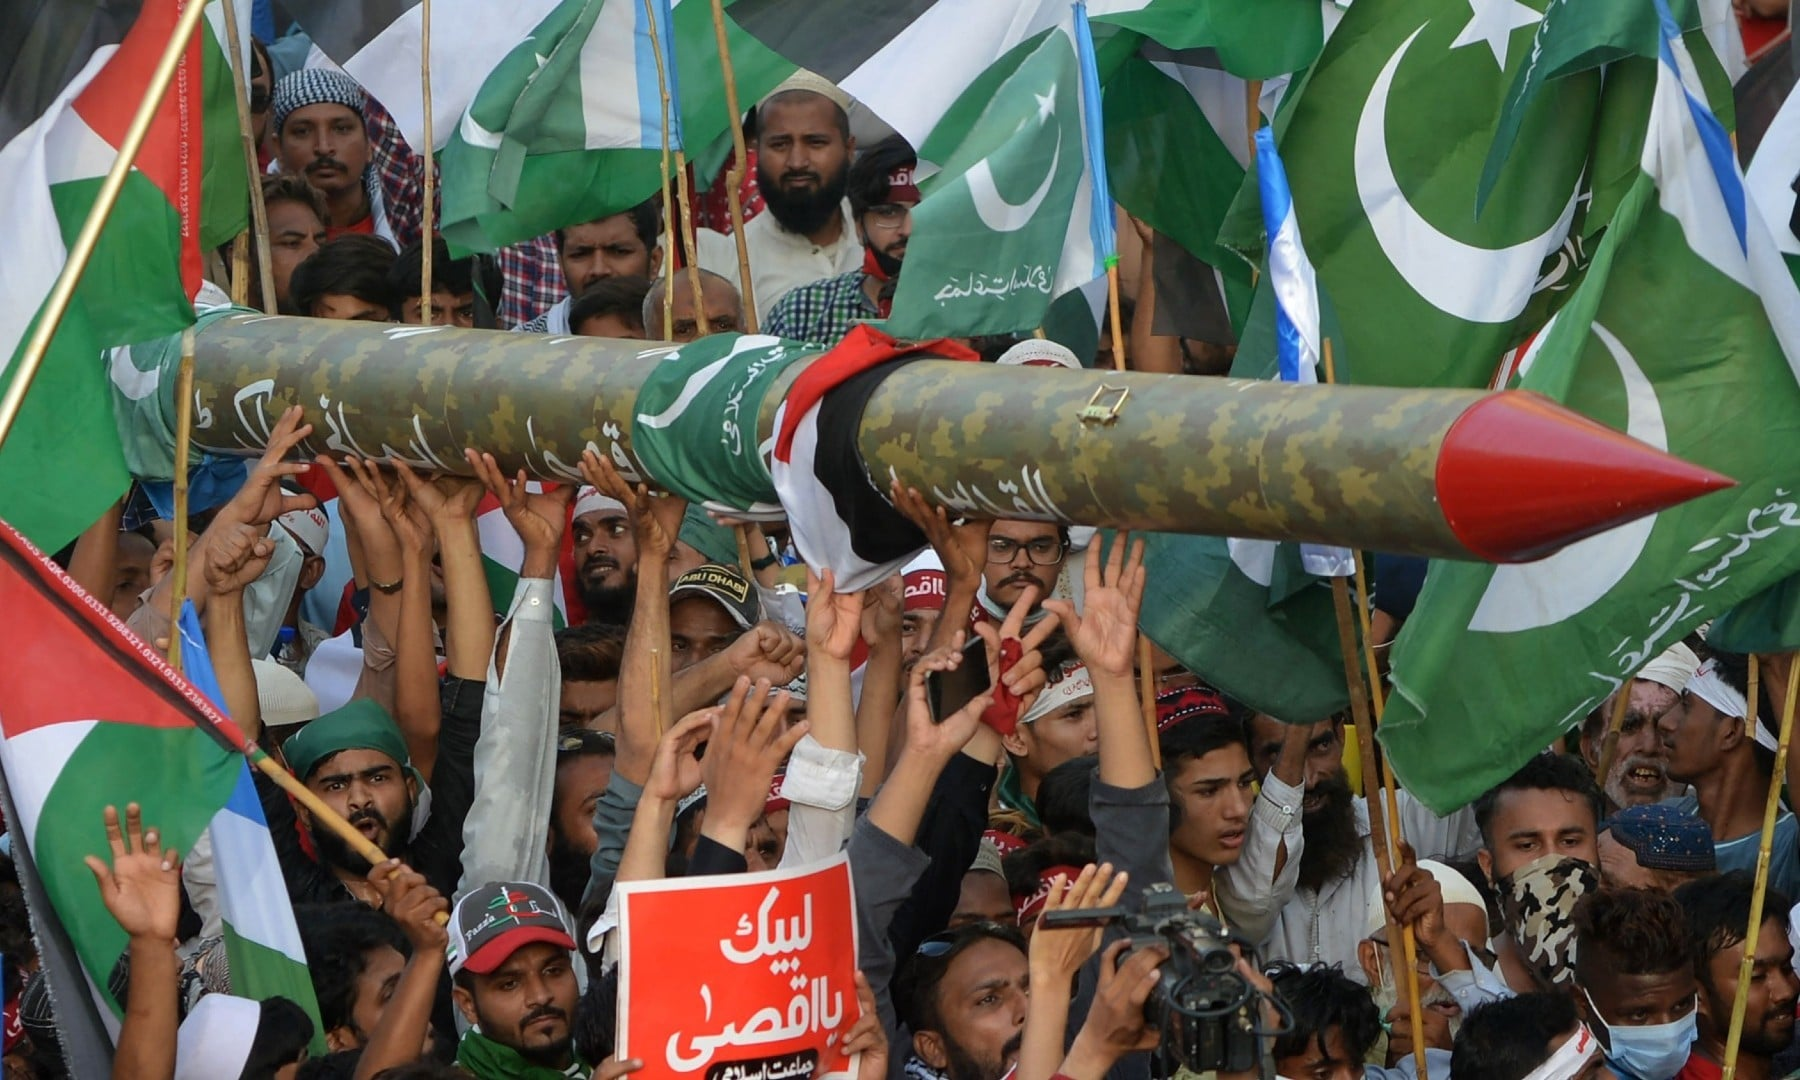 Supporters of the Jamaat-e-Islami (JI) carry a dummy rocket during a protest against Israel's attacks on the Palestinian Gaza Strip, in Karachi on May 23. — AFP